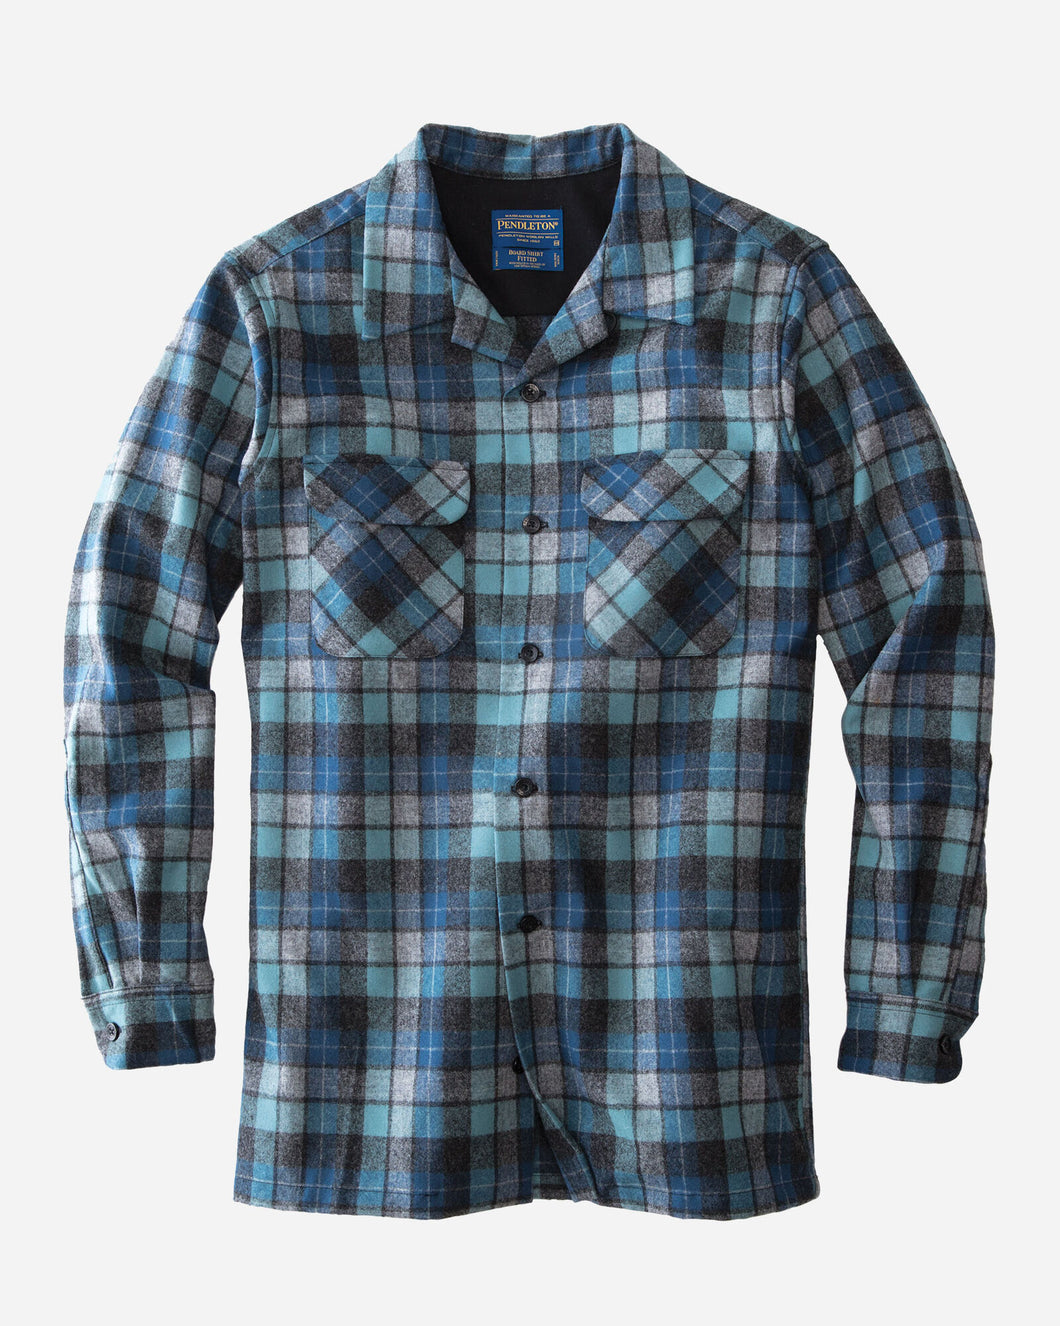 Pendleton Men's Original Board Shirt